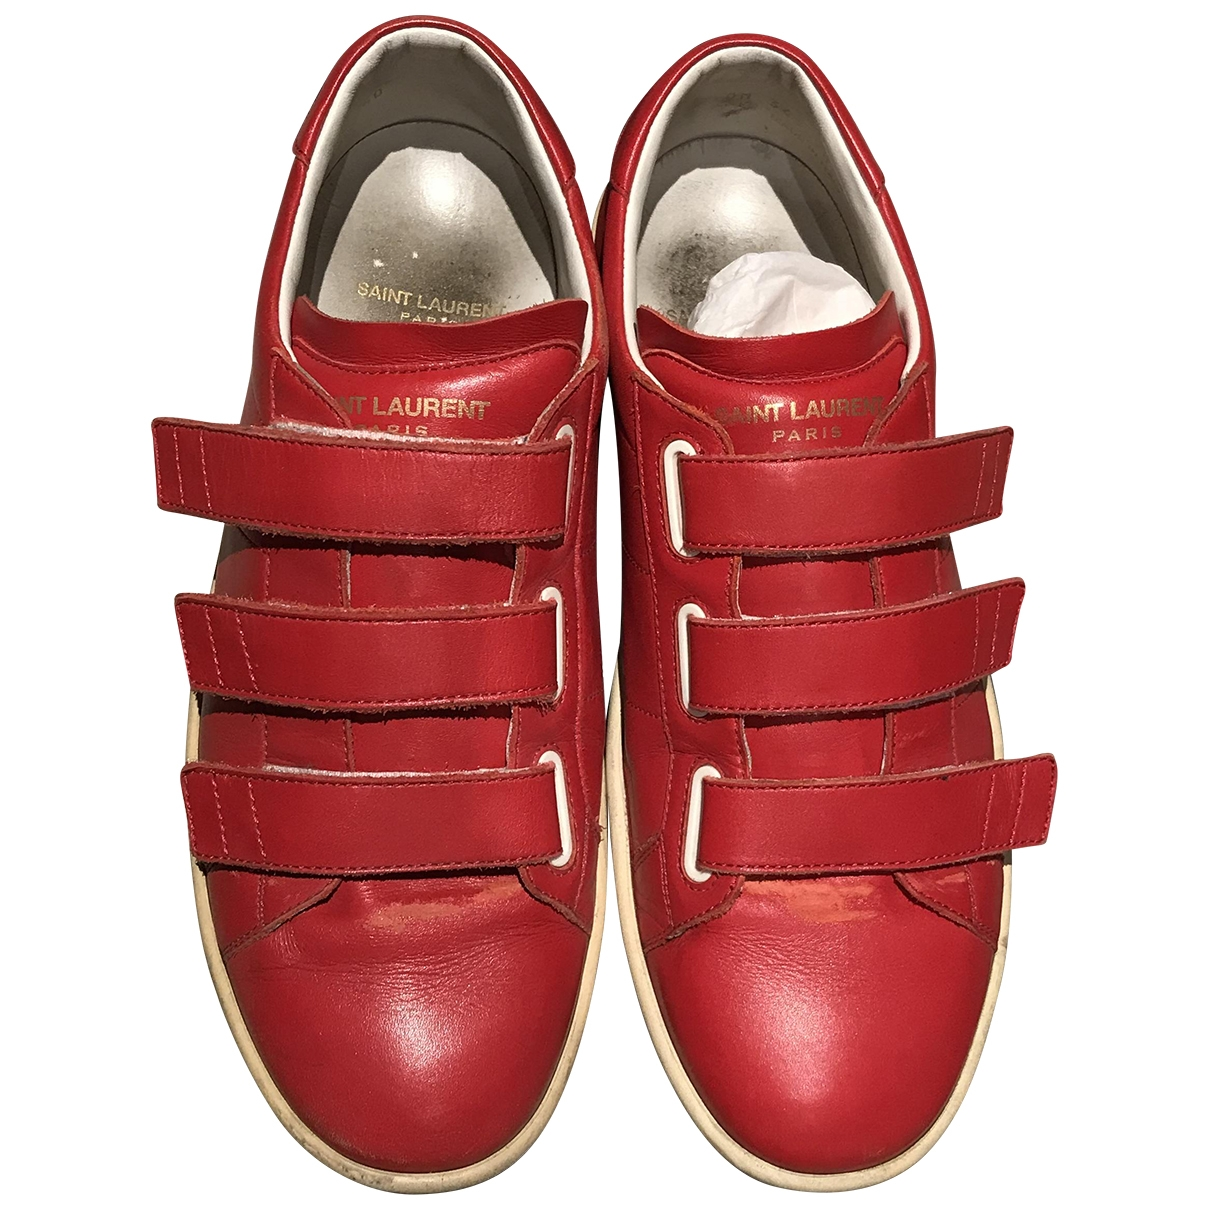 Saint Laurent - Baskets   pour femme en cuir - rouge